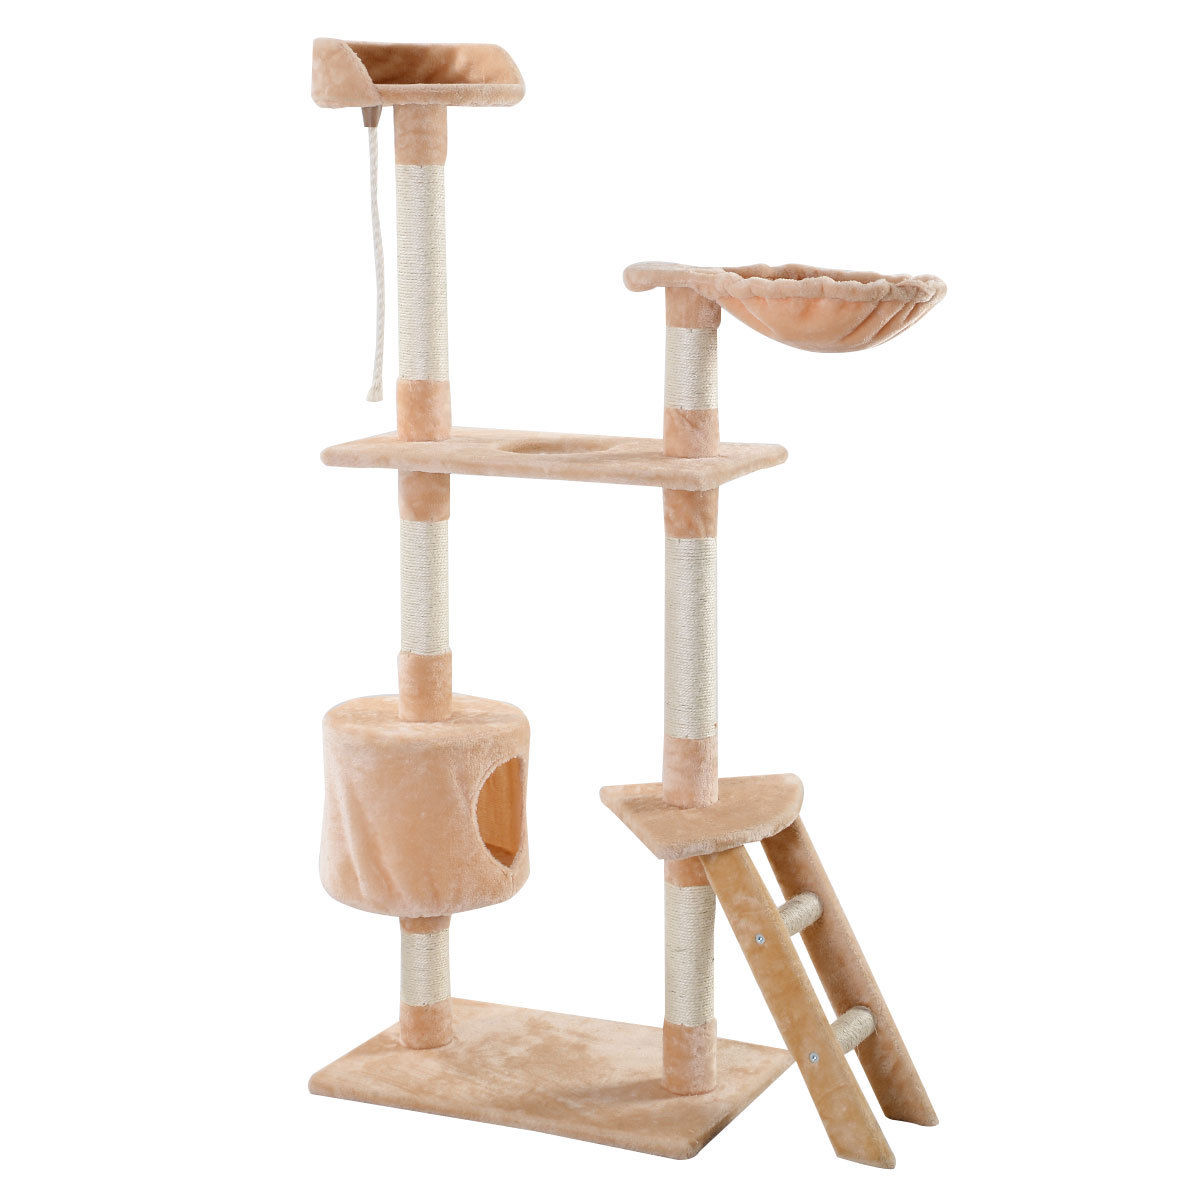 60 cat tree hammock tower condo scratcher furniture kitten